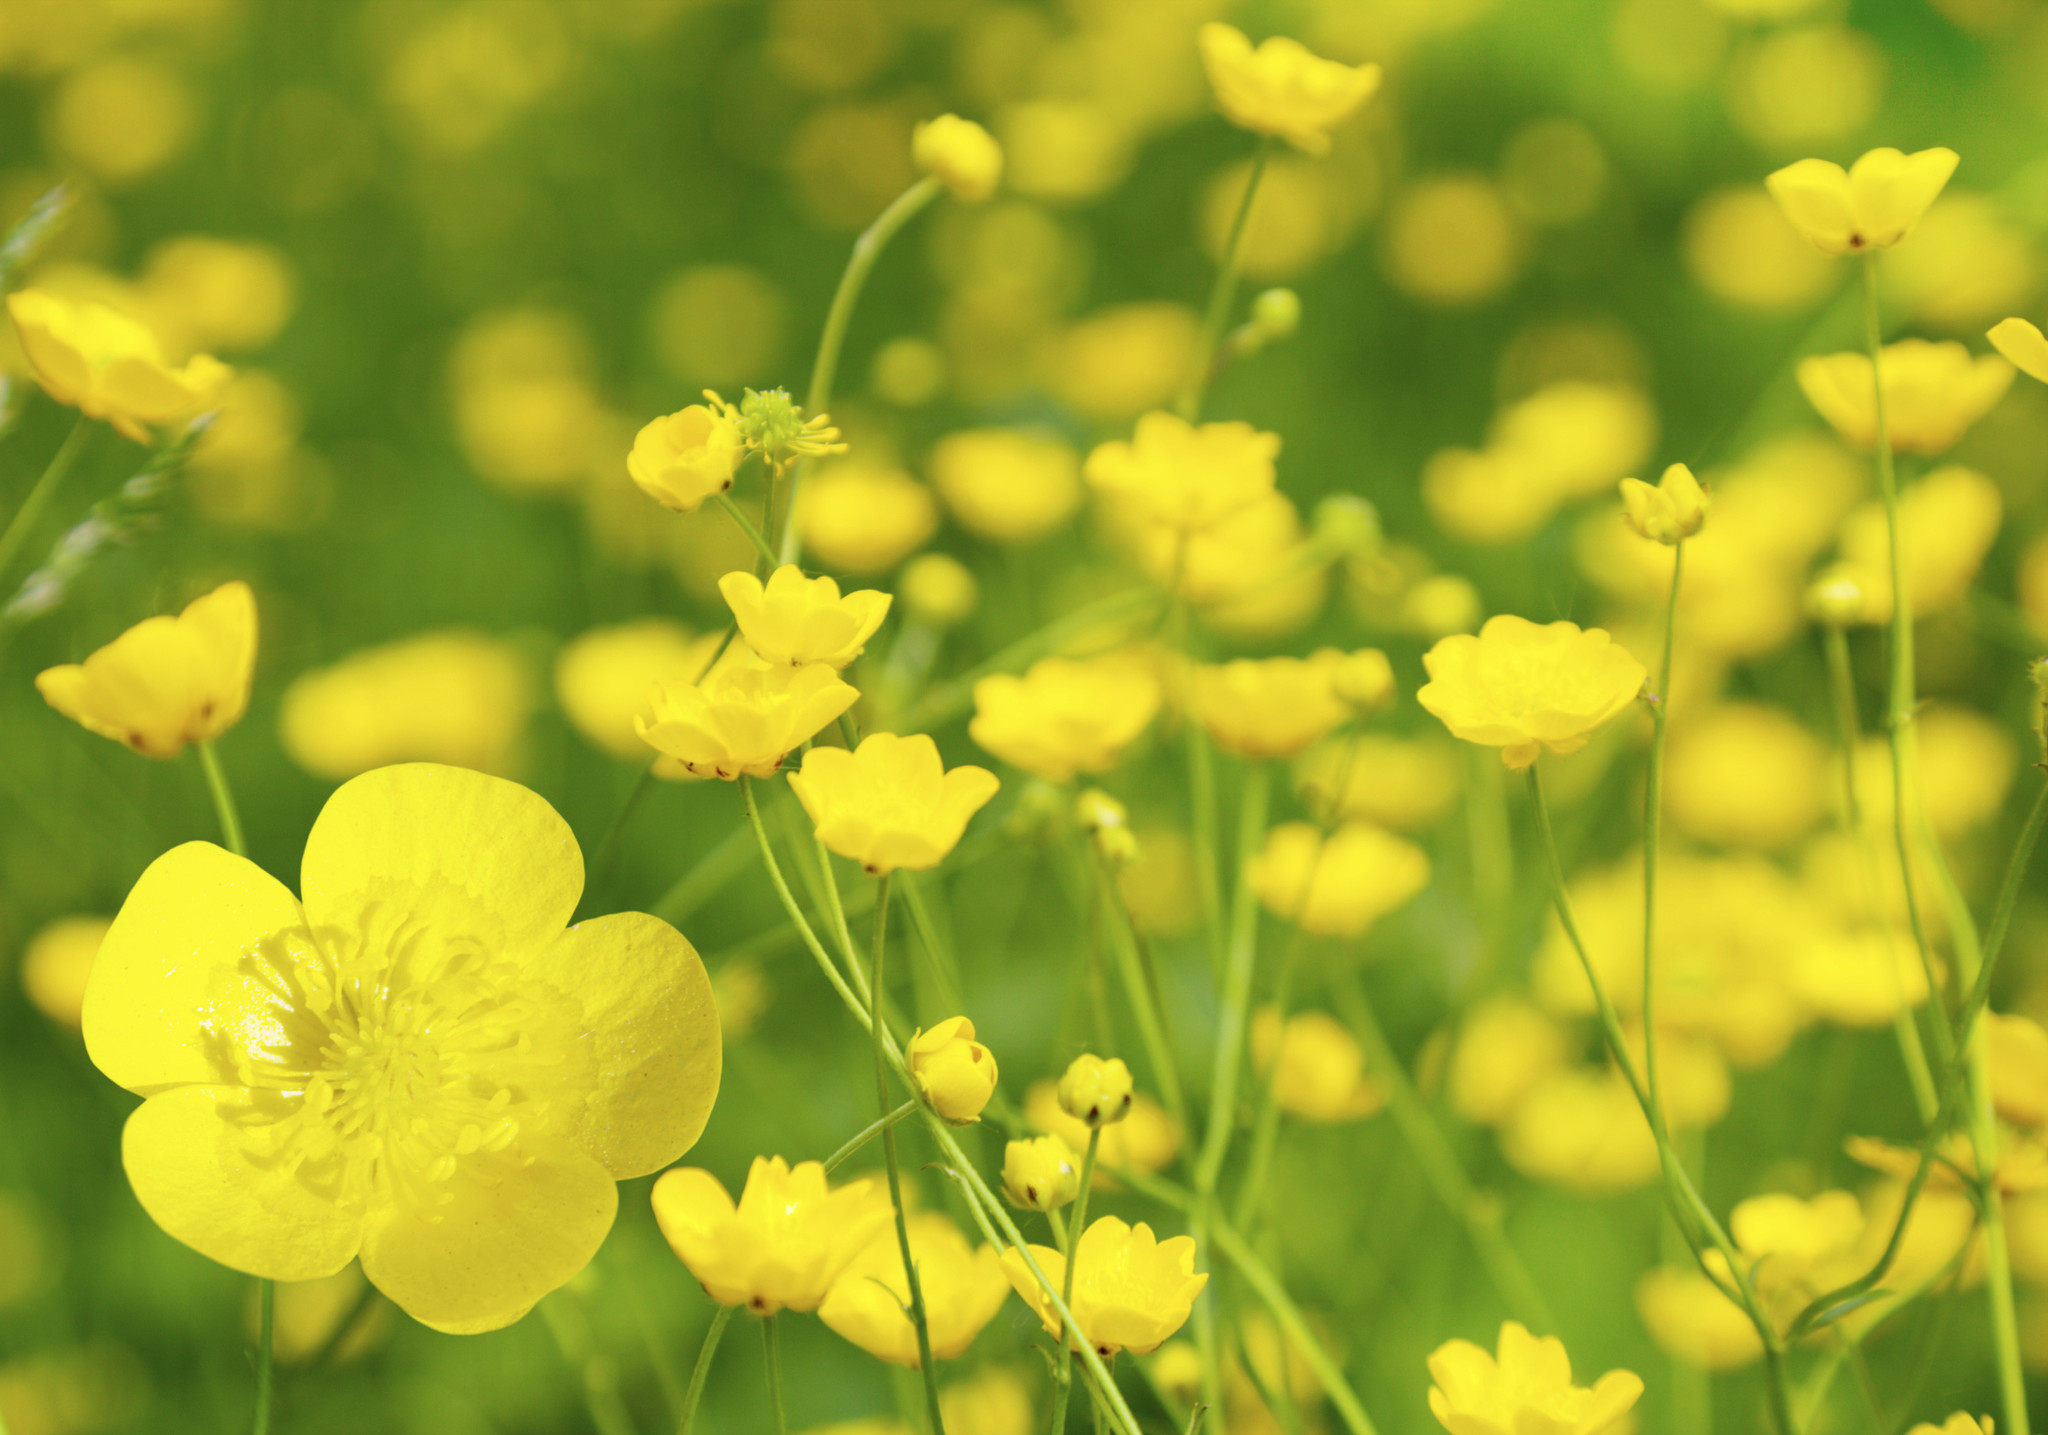 Problem Plants in your yard. Spring Allergies: The Buttercup